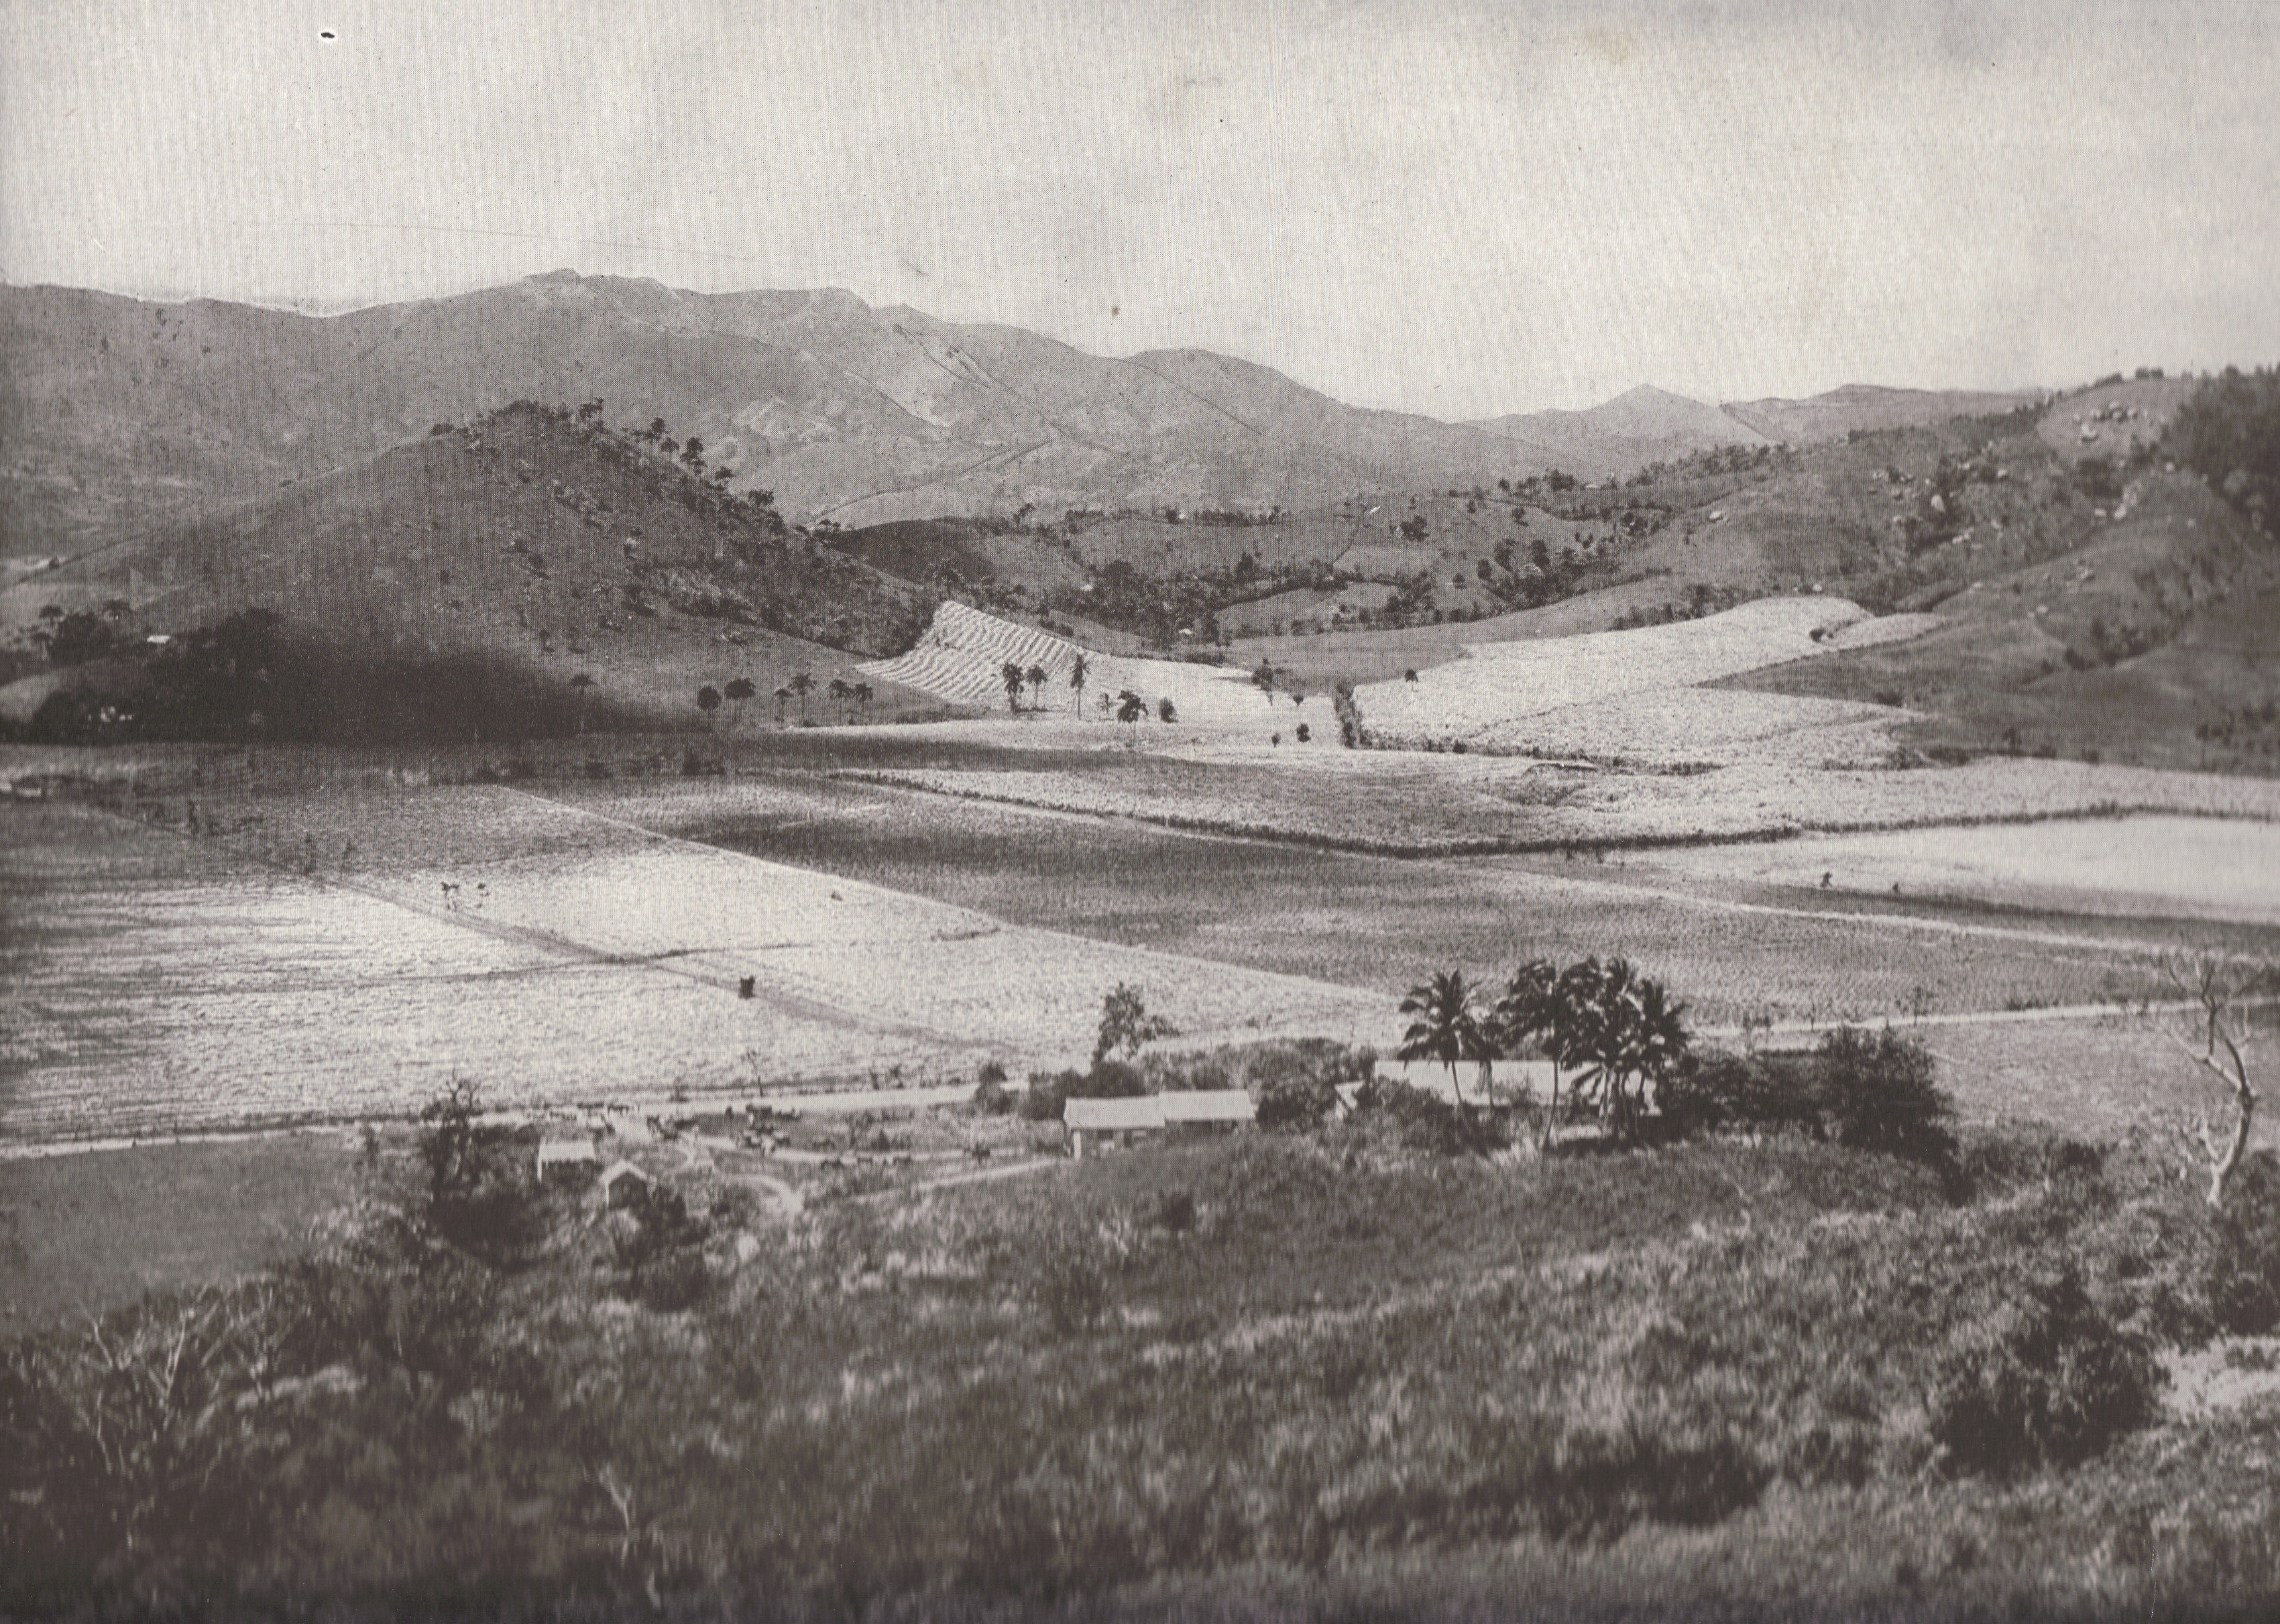 VIEW OF THE INTERIOR, NEAR THE MOUNTAINS (Cuba, 1898)